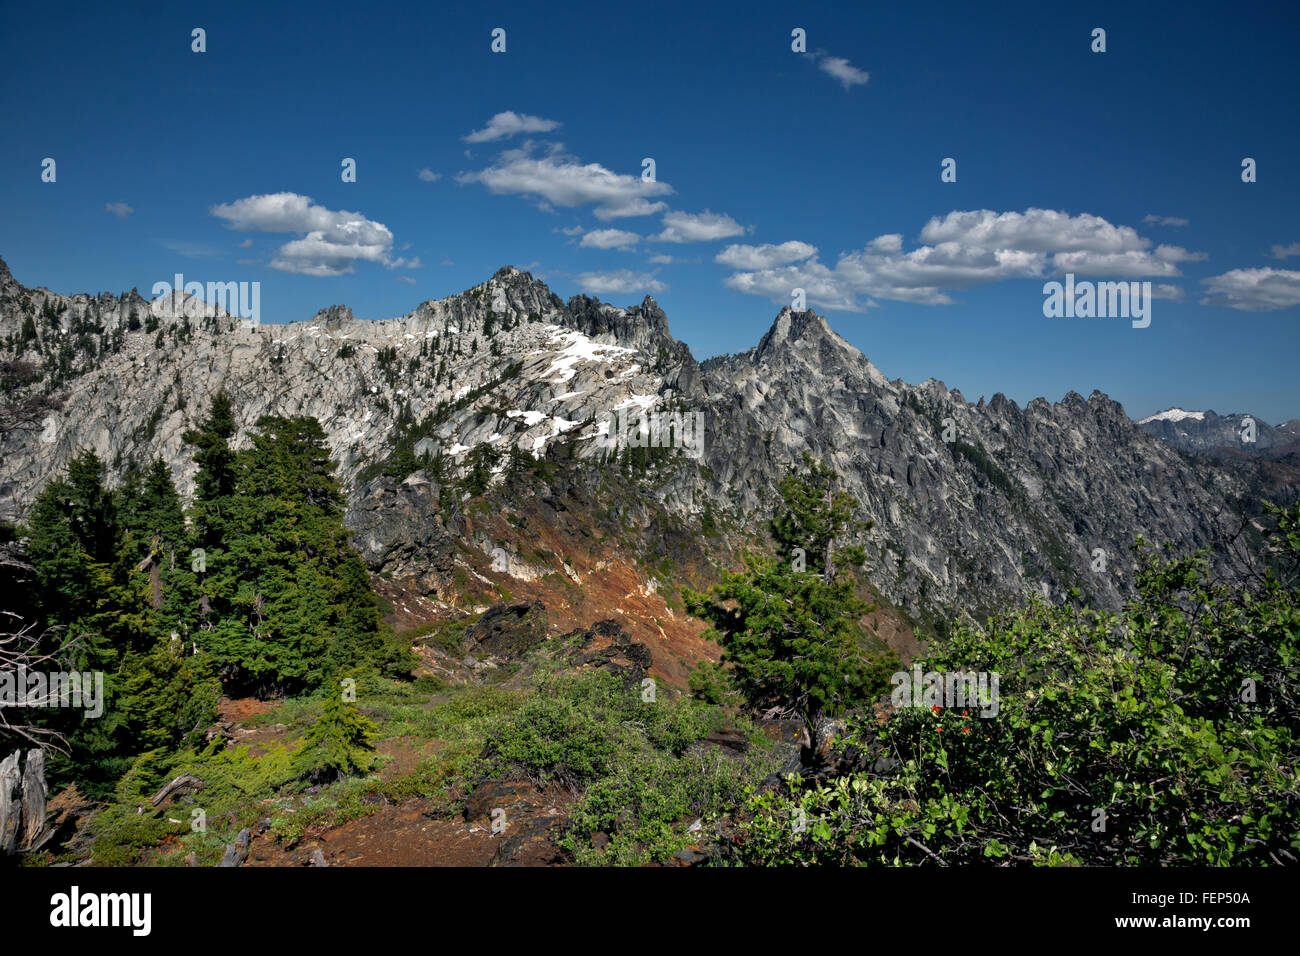 CALIFORNIA - Sawtooth Ridge from the summit of the Caribou Scramble in Trinity Alps Wilderness of Shasta-Trinity - Stock Image